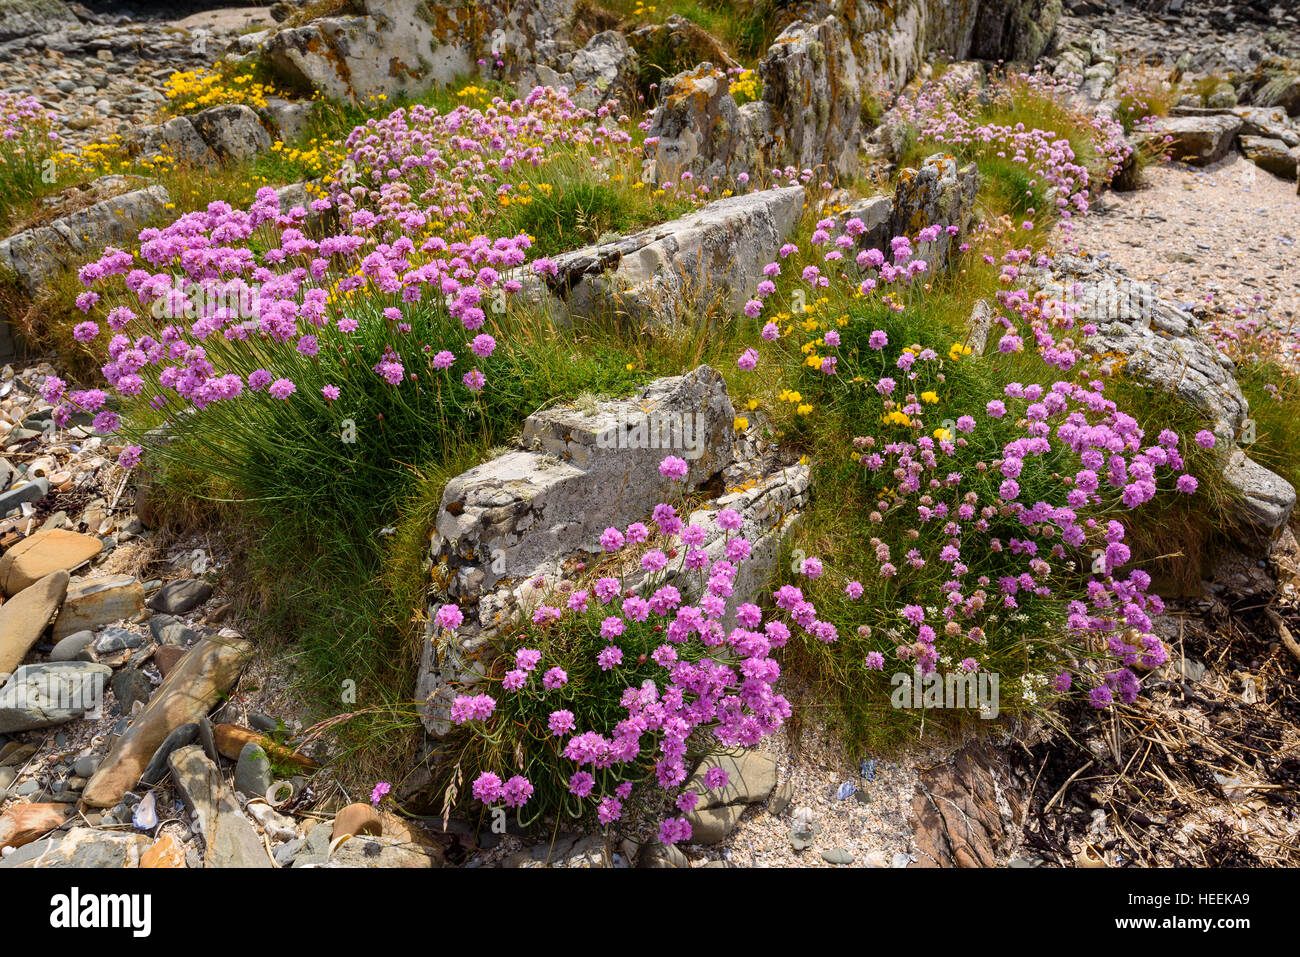 Birdsfoot trefoil and Thrift, wildflowers, Carrick, Dumfries & Galloway, Scotland - Stock Image